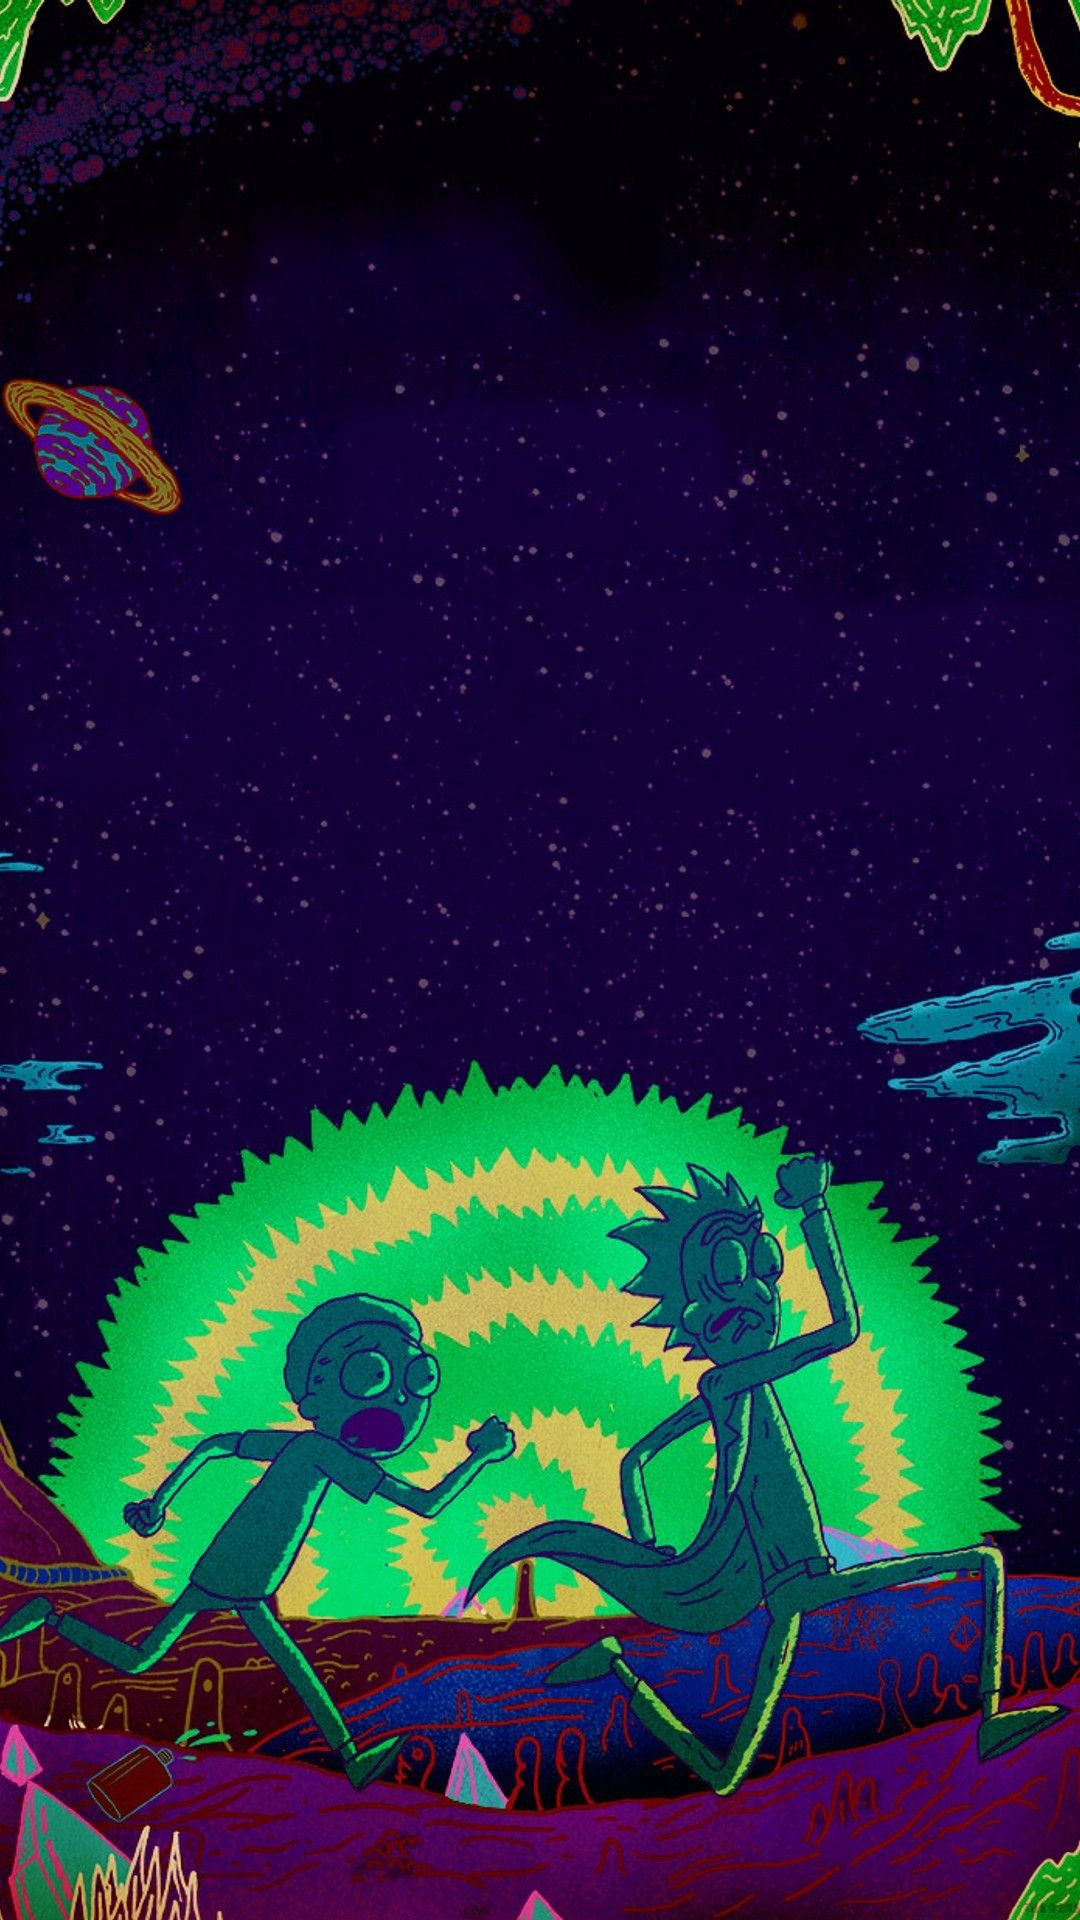 Rick And Morty I Phones Wallpaper Rick And Morty Poster Cartoon